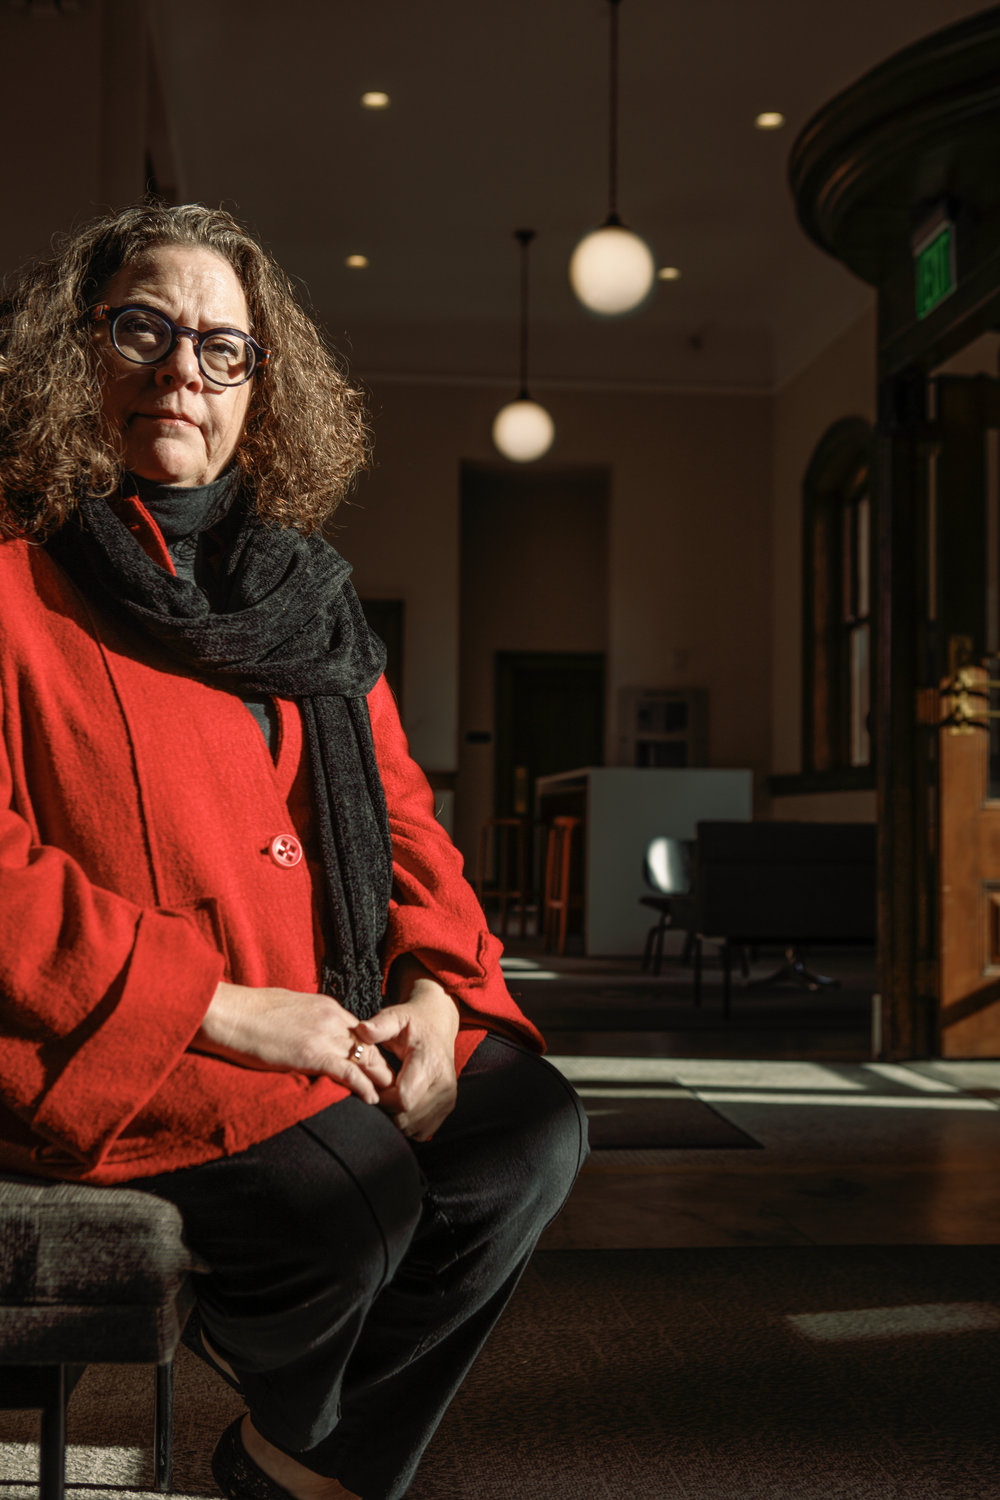 Gayle DeBruyn, the chair of Collaborative Design and Furniture/Design Studies Programs at KCAD is a restless intellectual.